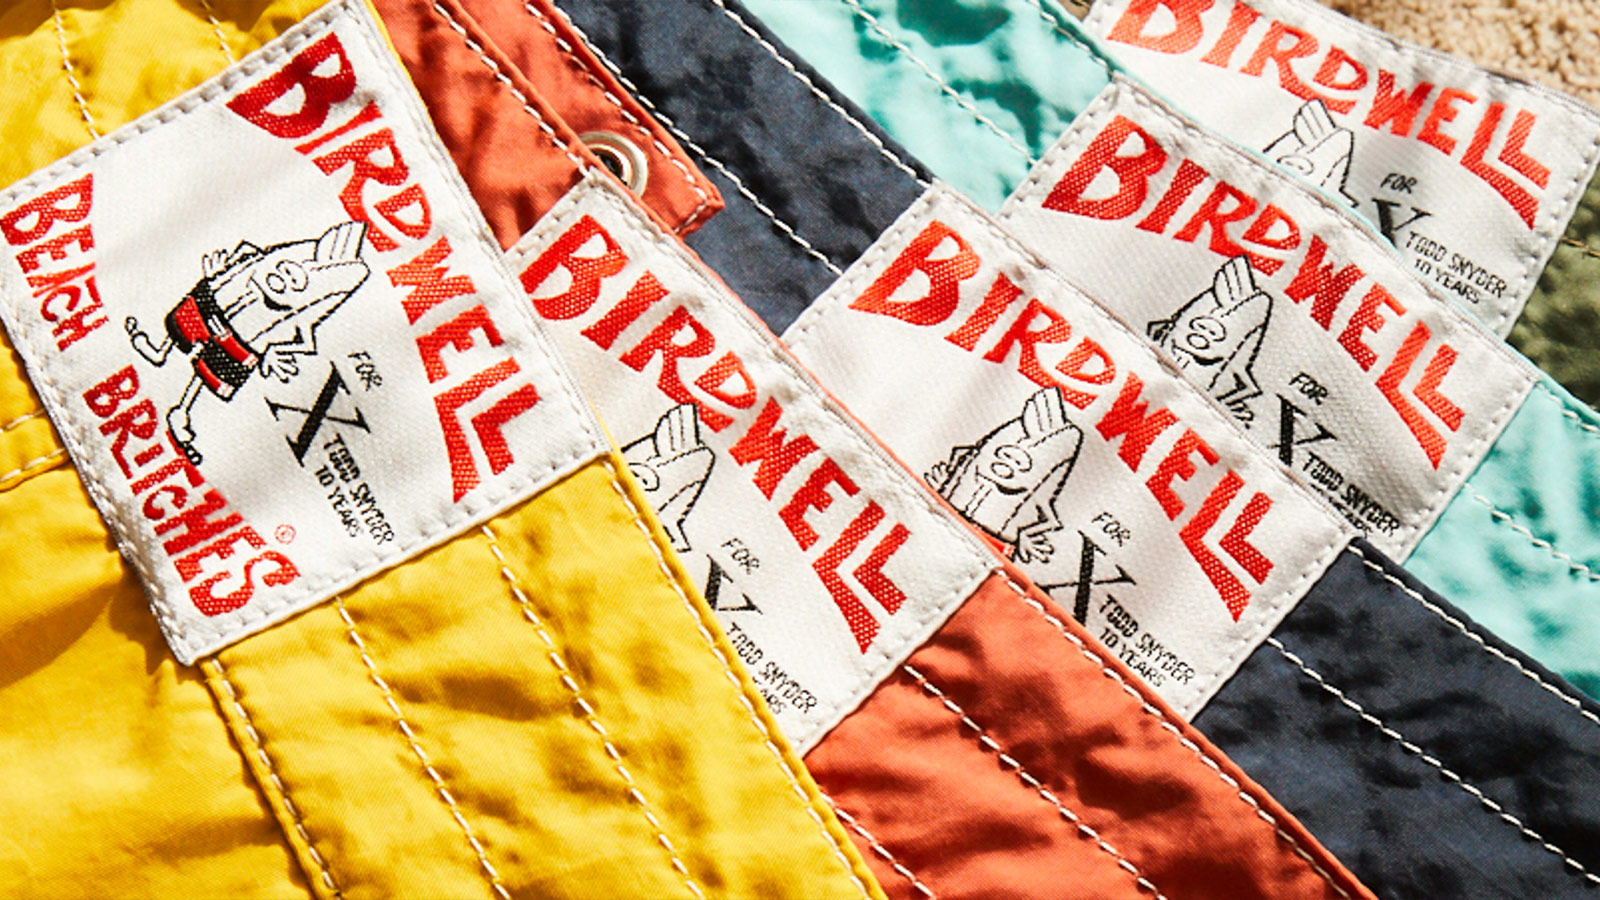 Todd Snyder x Birdwell Stone-Washed Swim Capsule Collection